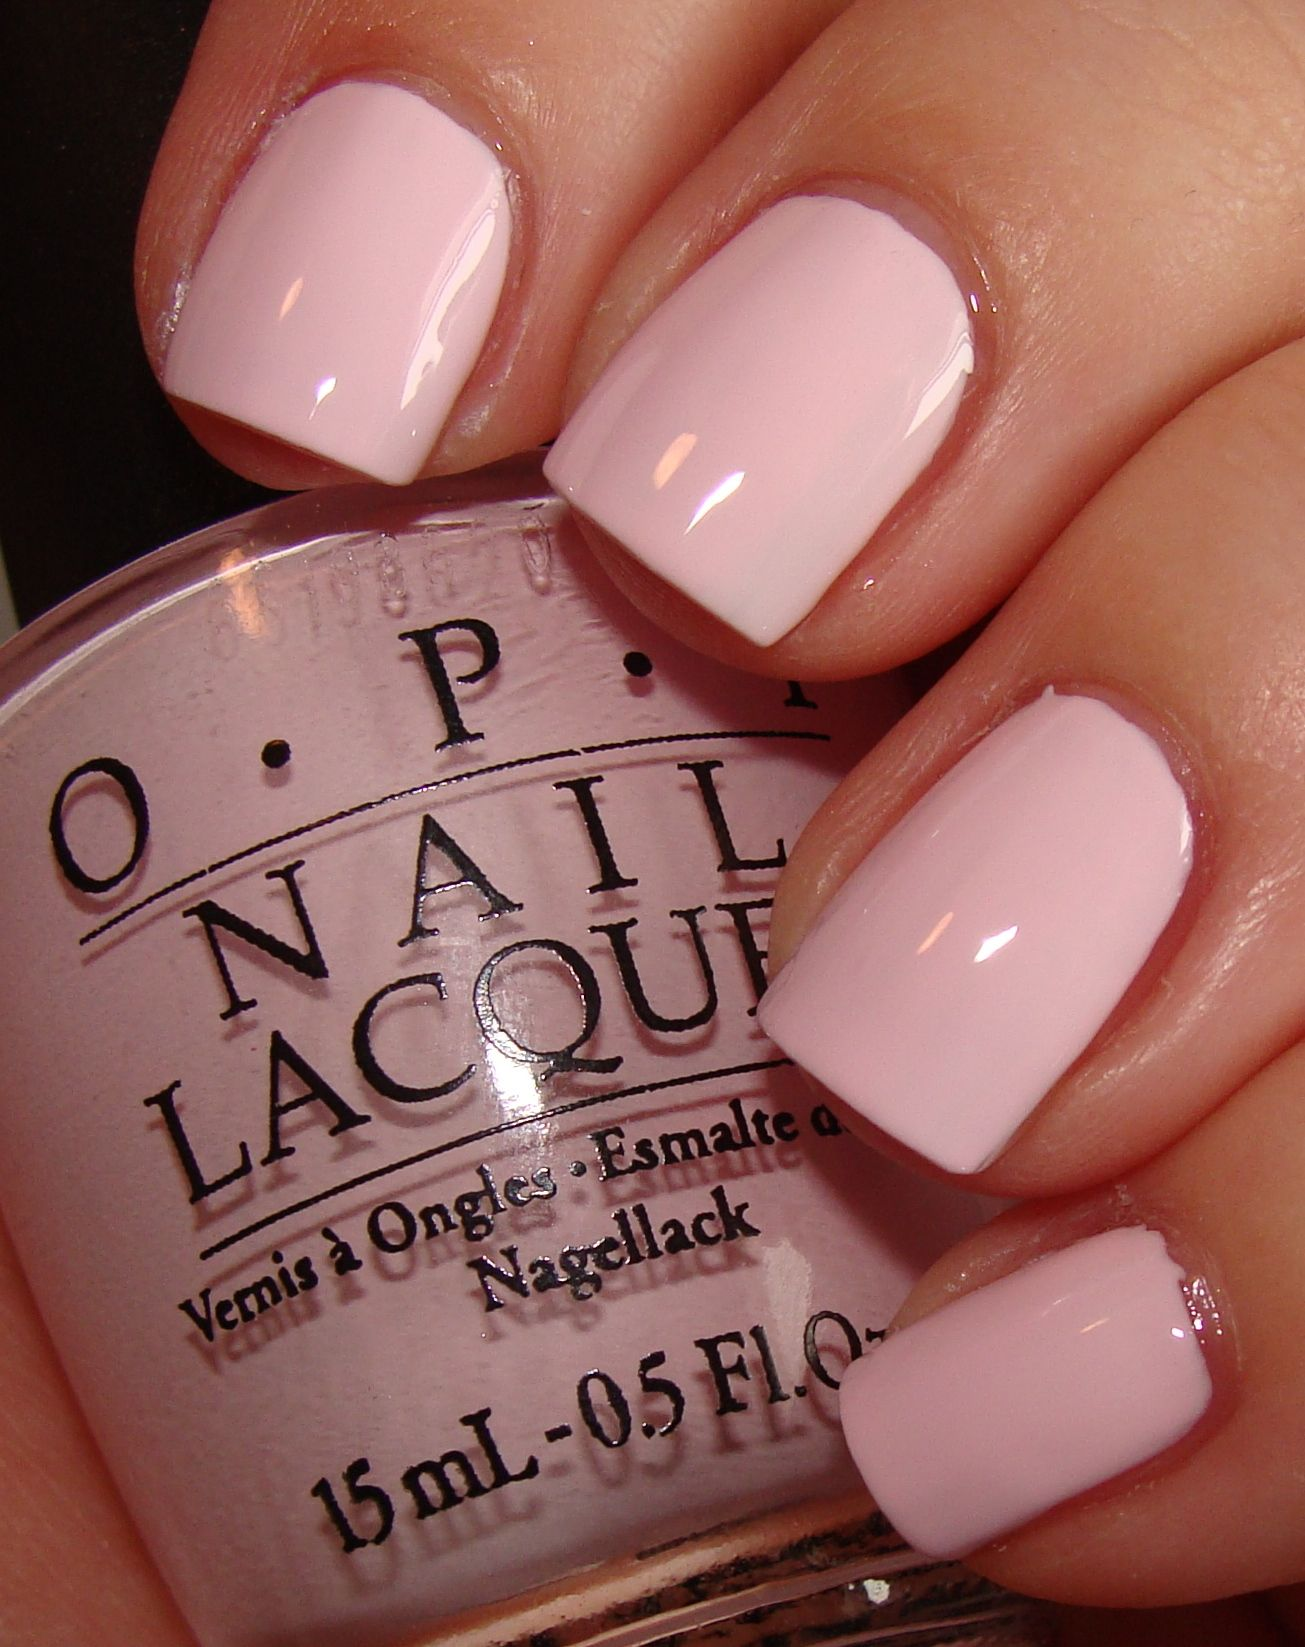 i think this is opi's mod about you. mine got old, need a new one